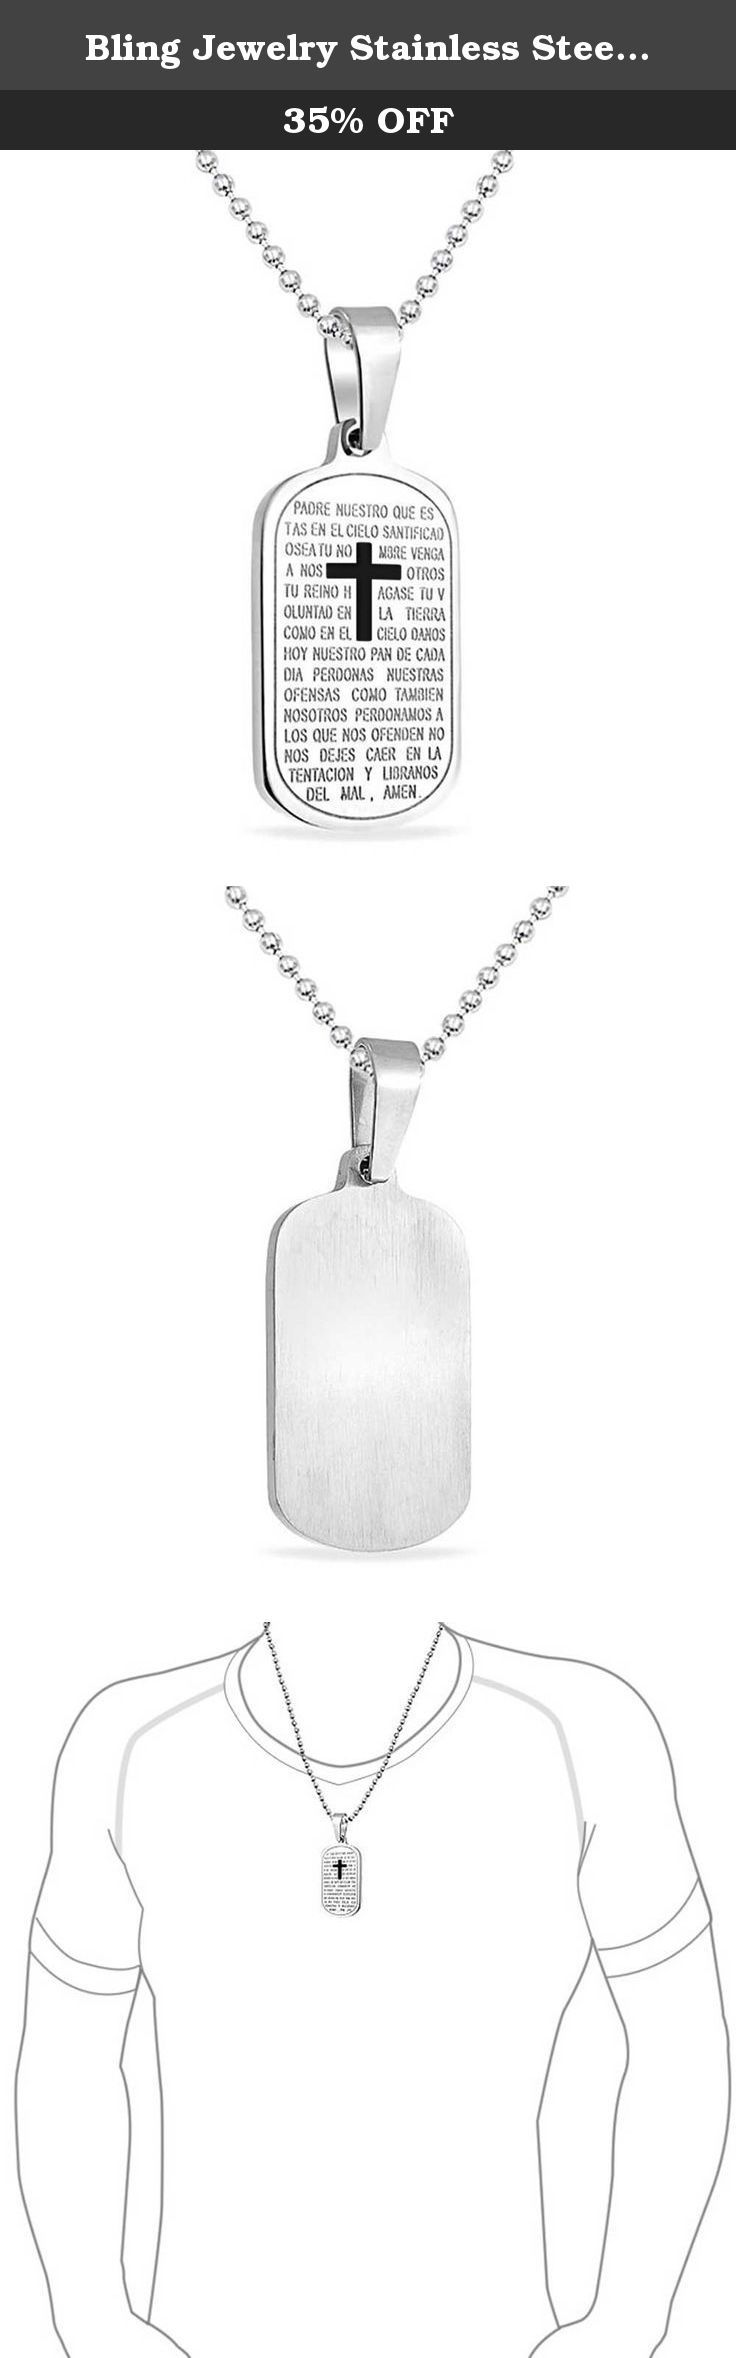 Bling Jewelry Stainless Steel Padre Nuestro Lords Prayer Dog Tag Necklace 24in. The Lords Prayer shines through in Spanish on this classy stainless steel dog tag necklace. This chic Padre Nuestro Pendant Necklace features a black enamel cross. The durability of stainless steel makes this dog tag chain necklace an excellent choice for daily wear. A sentimental and modern take on this lords prayer pendant lets you blend fashion with meaning.